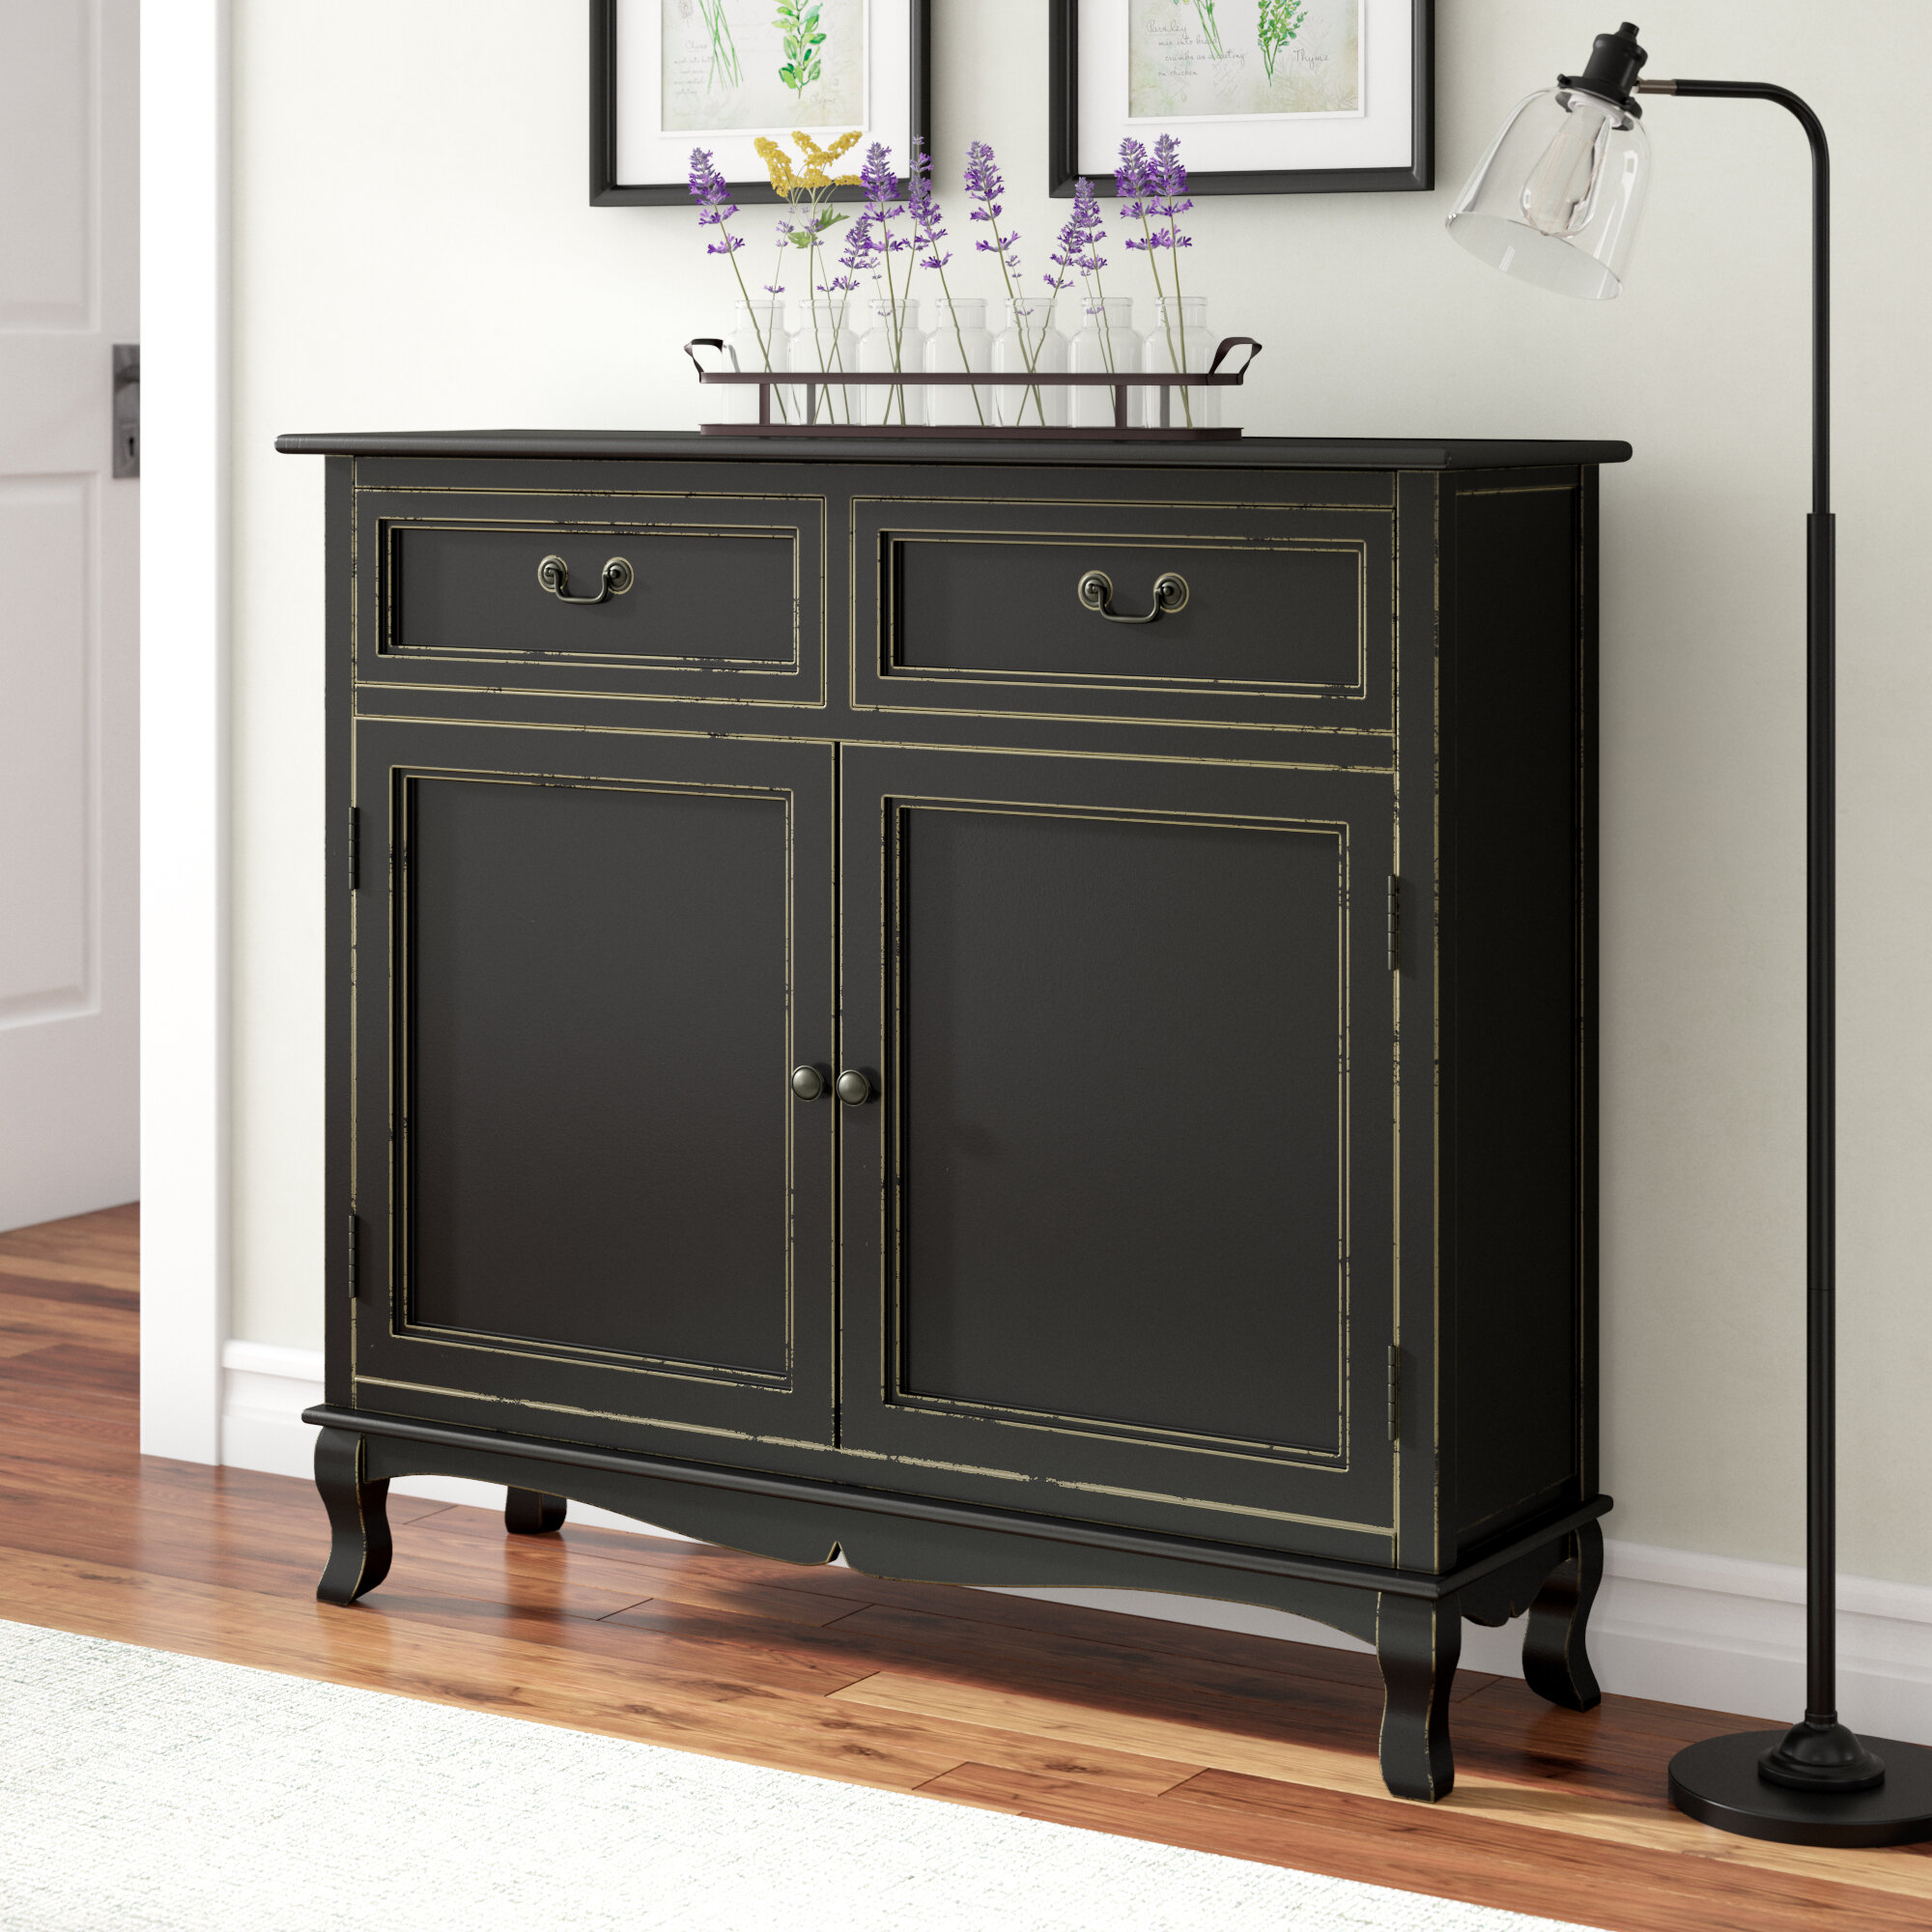 Gracie Oaks Hargrave Wood 2 Drawer 2 Door Accent Cabinet Reviews